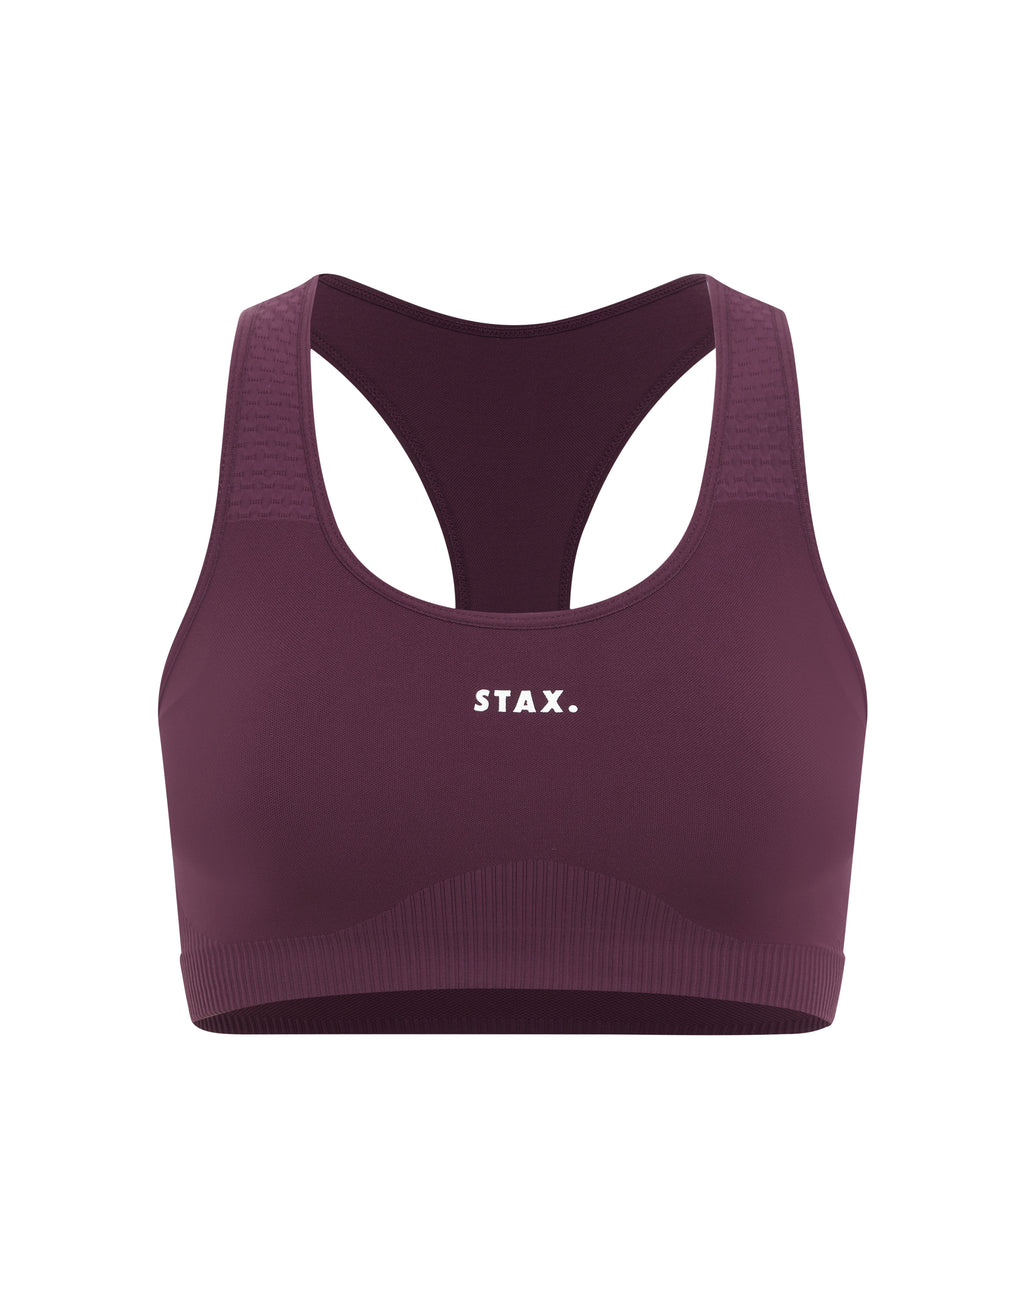 STAX. Tote Bag - Lavender (Purple)